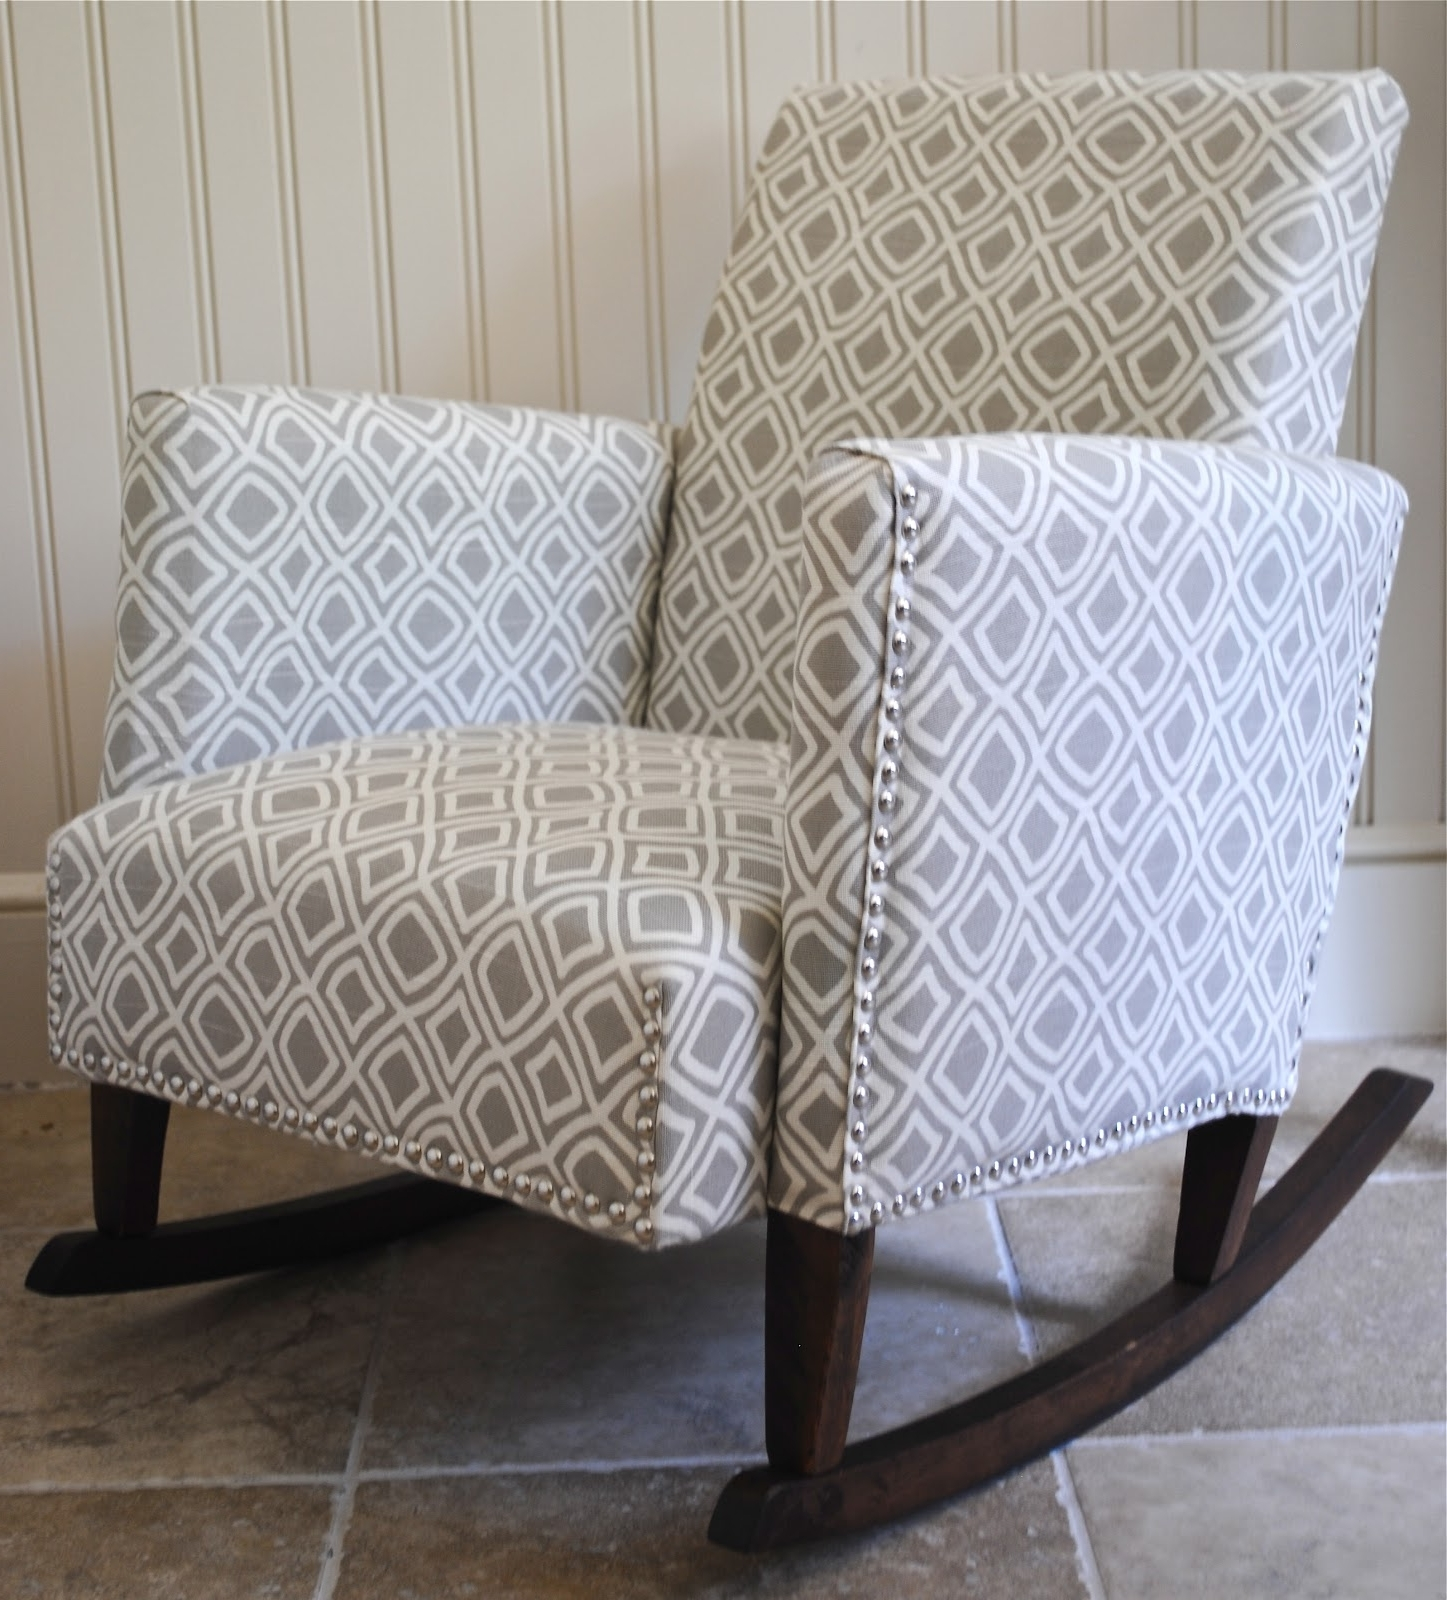 Most Current Diy}Ish Upholstered Child's Rocking Chair – The Chronicles Of Home In Upholstered Rocking Chairs (View 10 of 15)